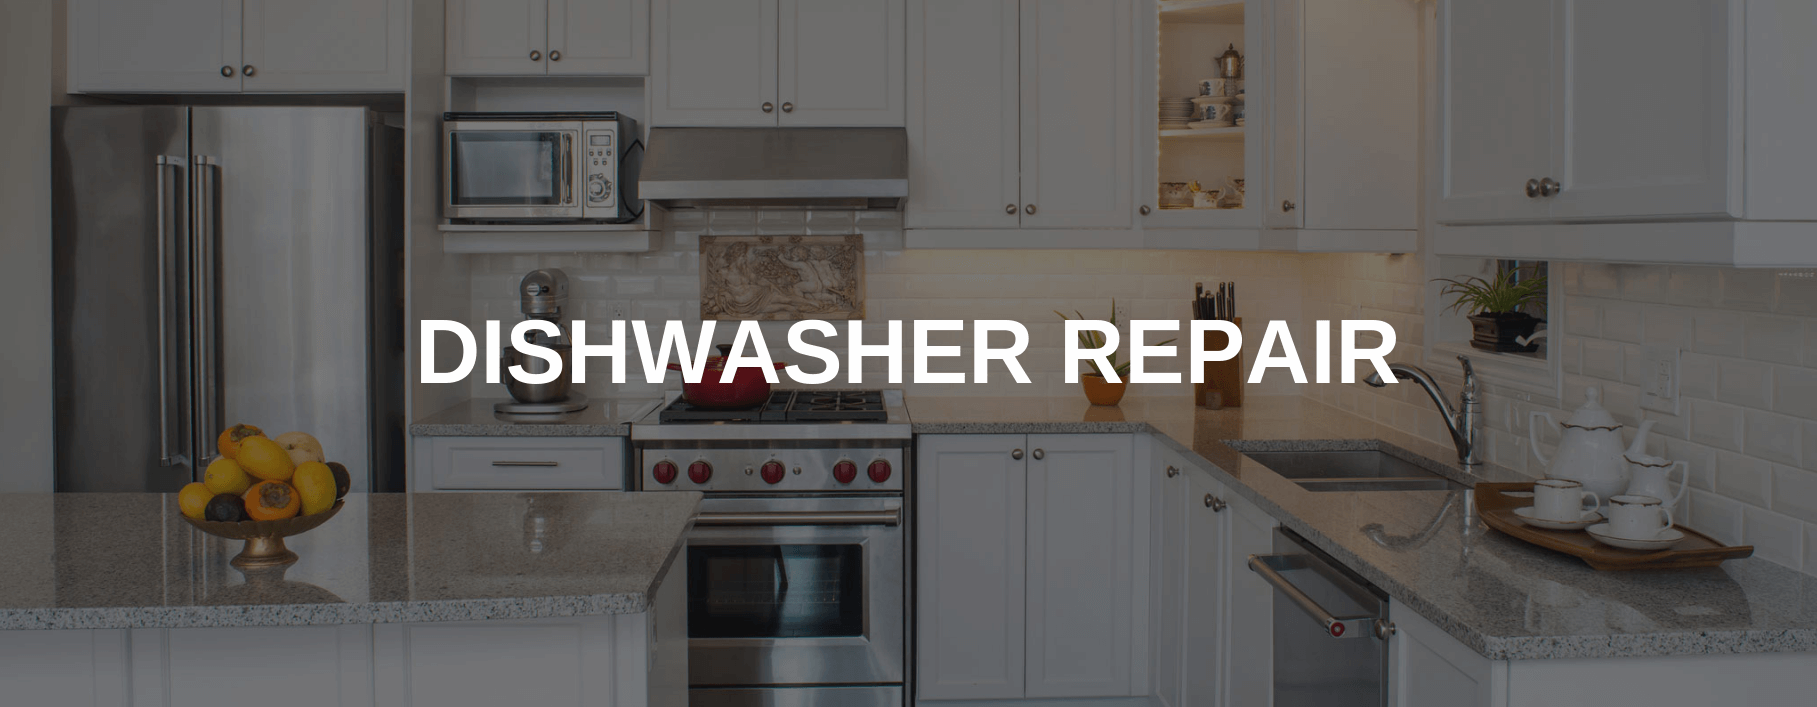 dishwasher repair atlanta